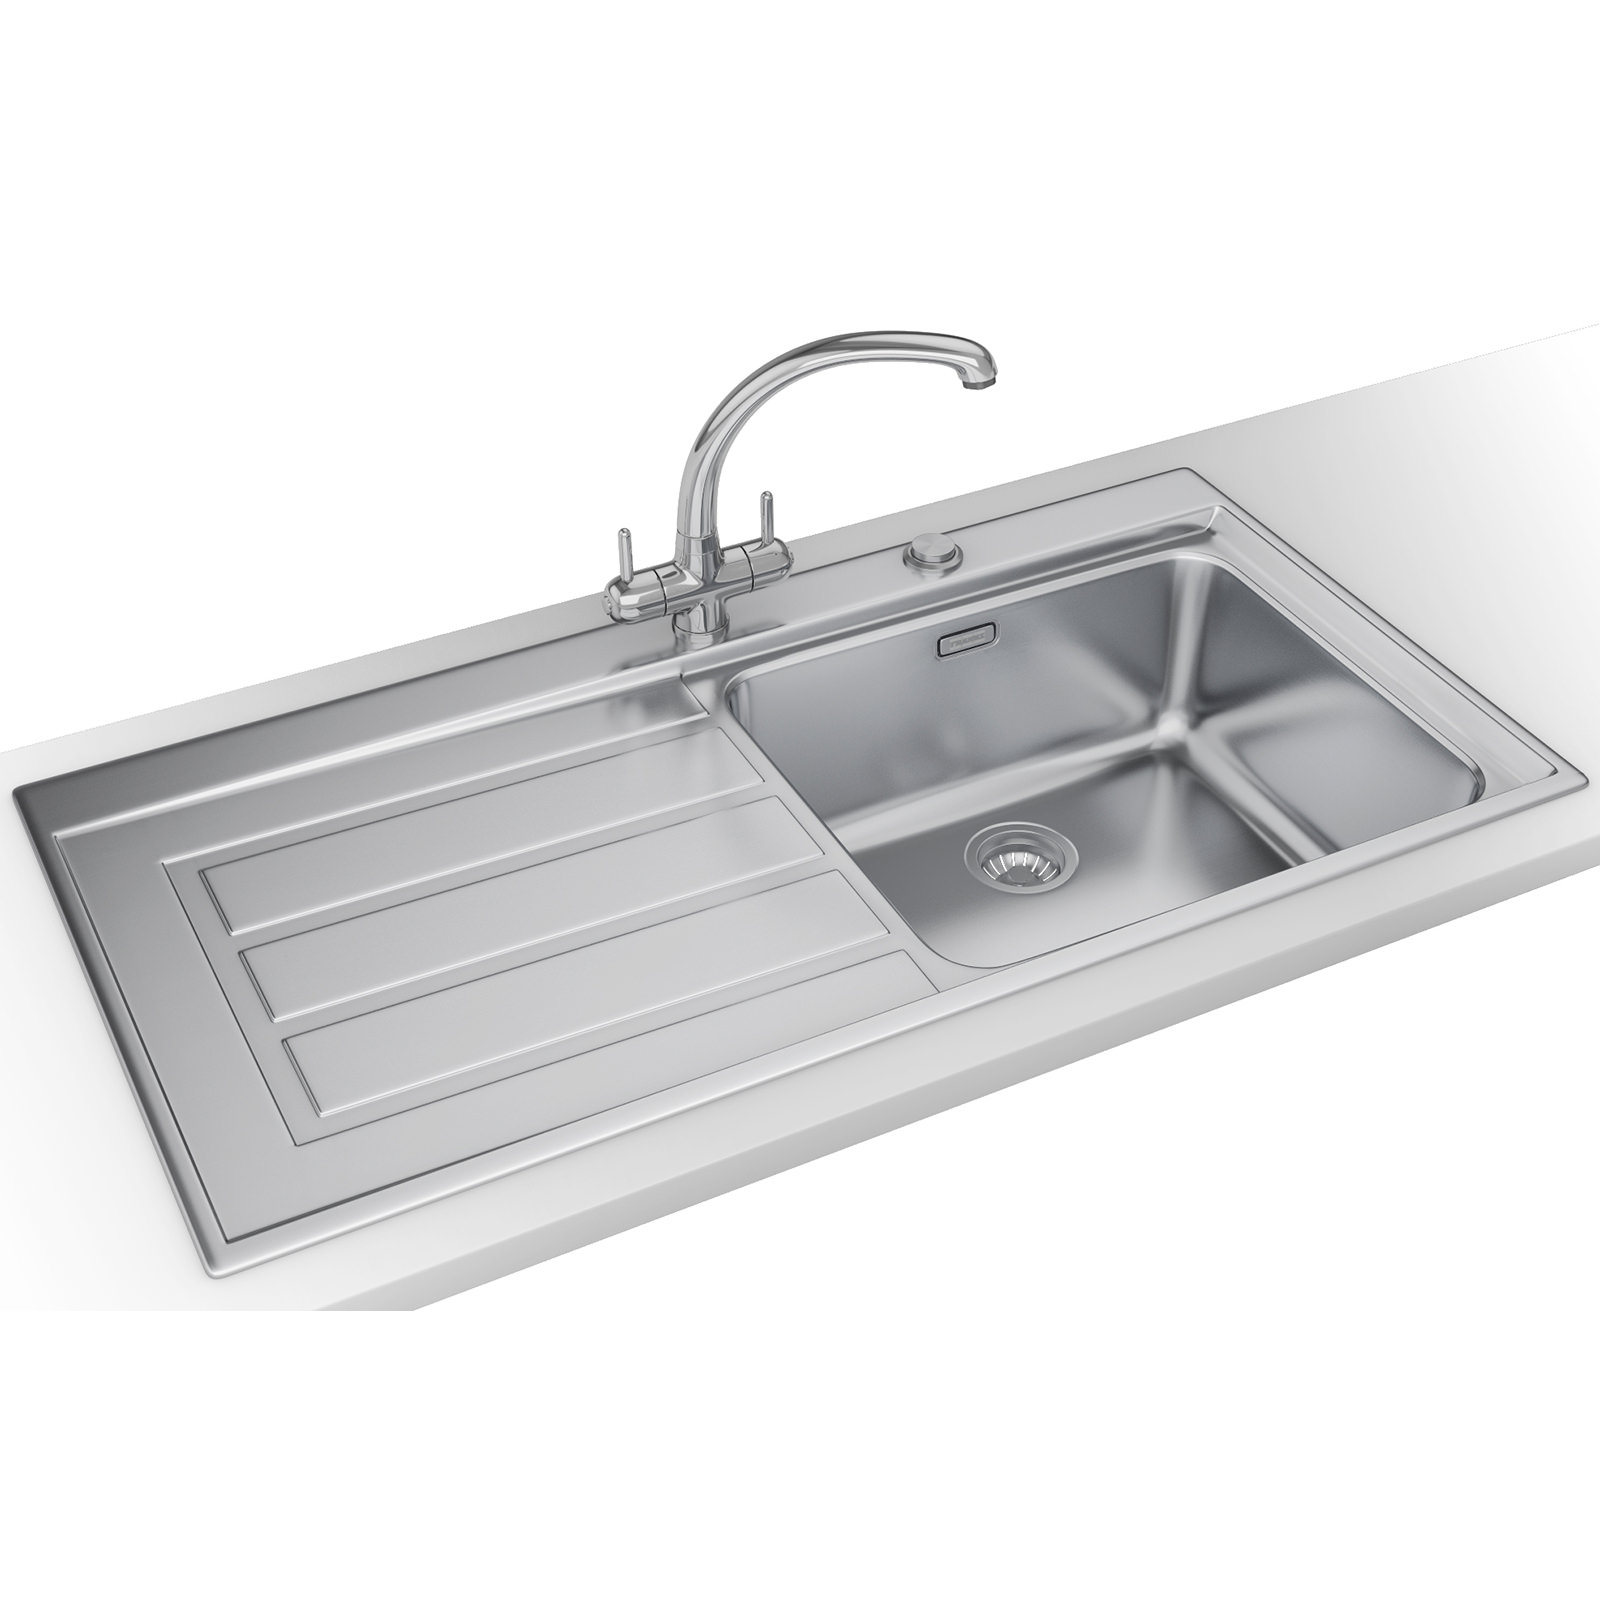 Franke Sinks And Taps : Franke Epos Propack EOX 611 Stainless Steel Kitchen Sink And Tap ...